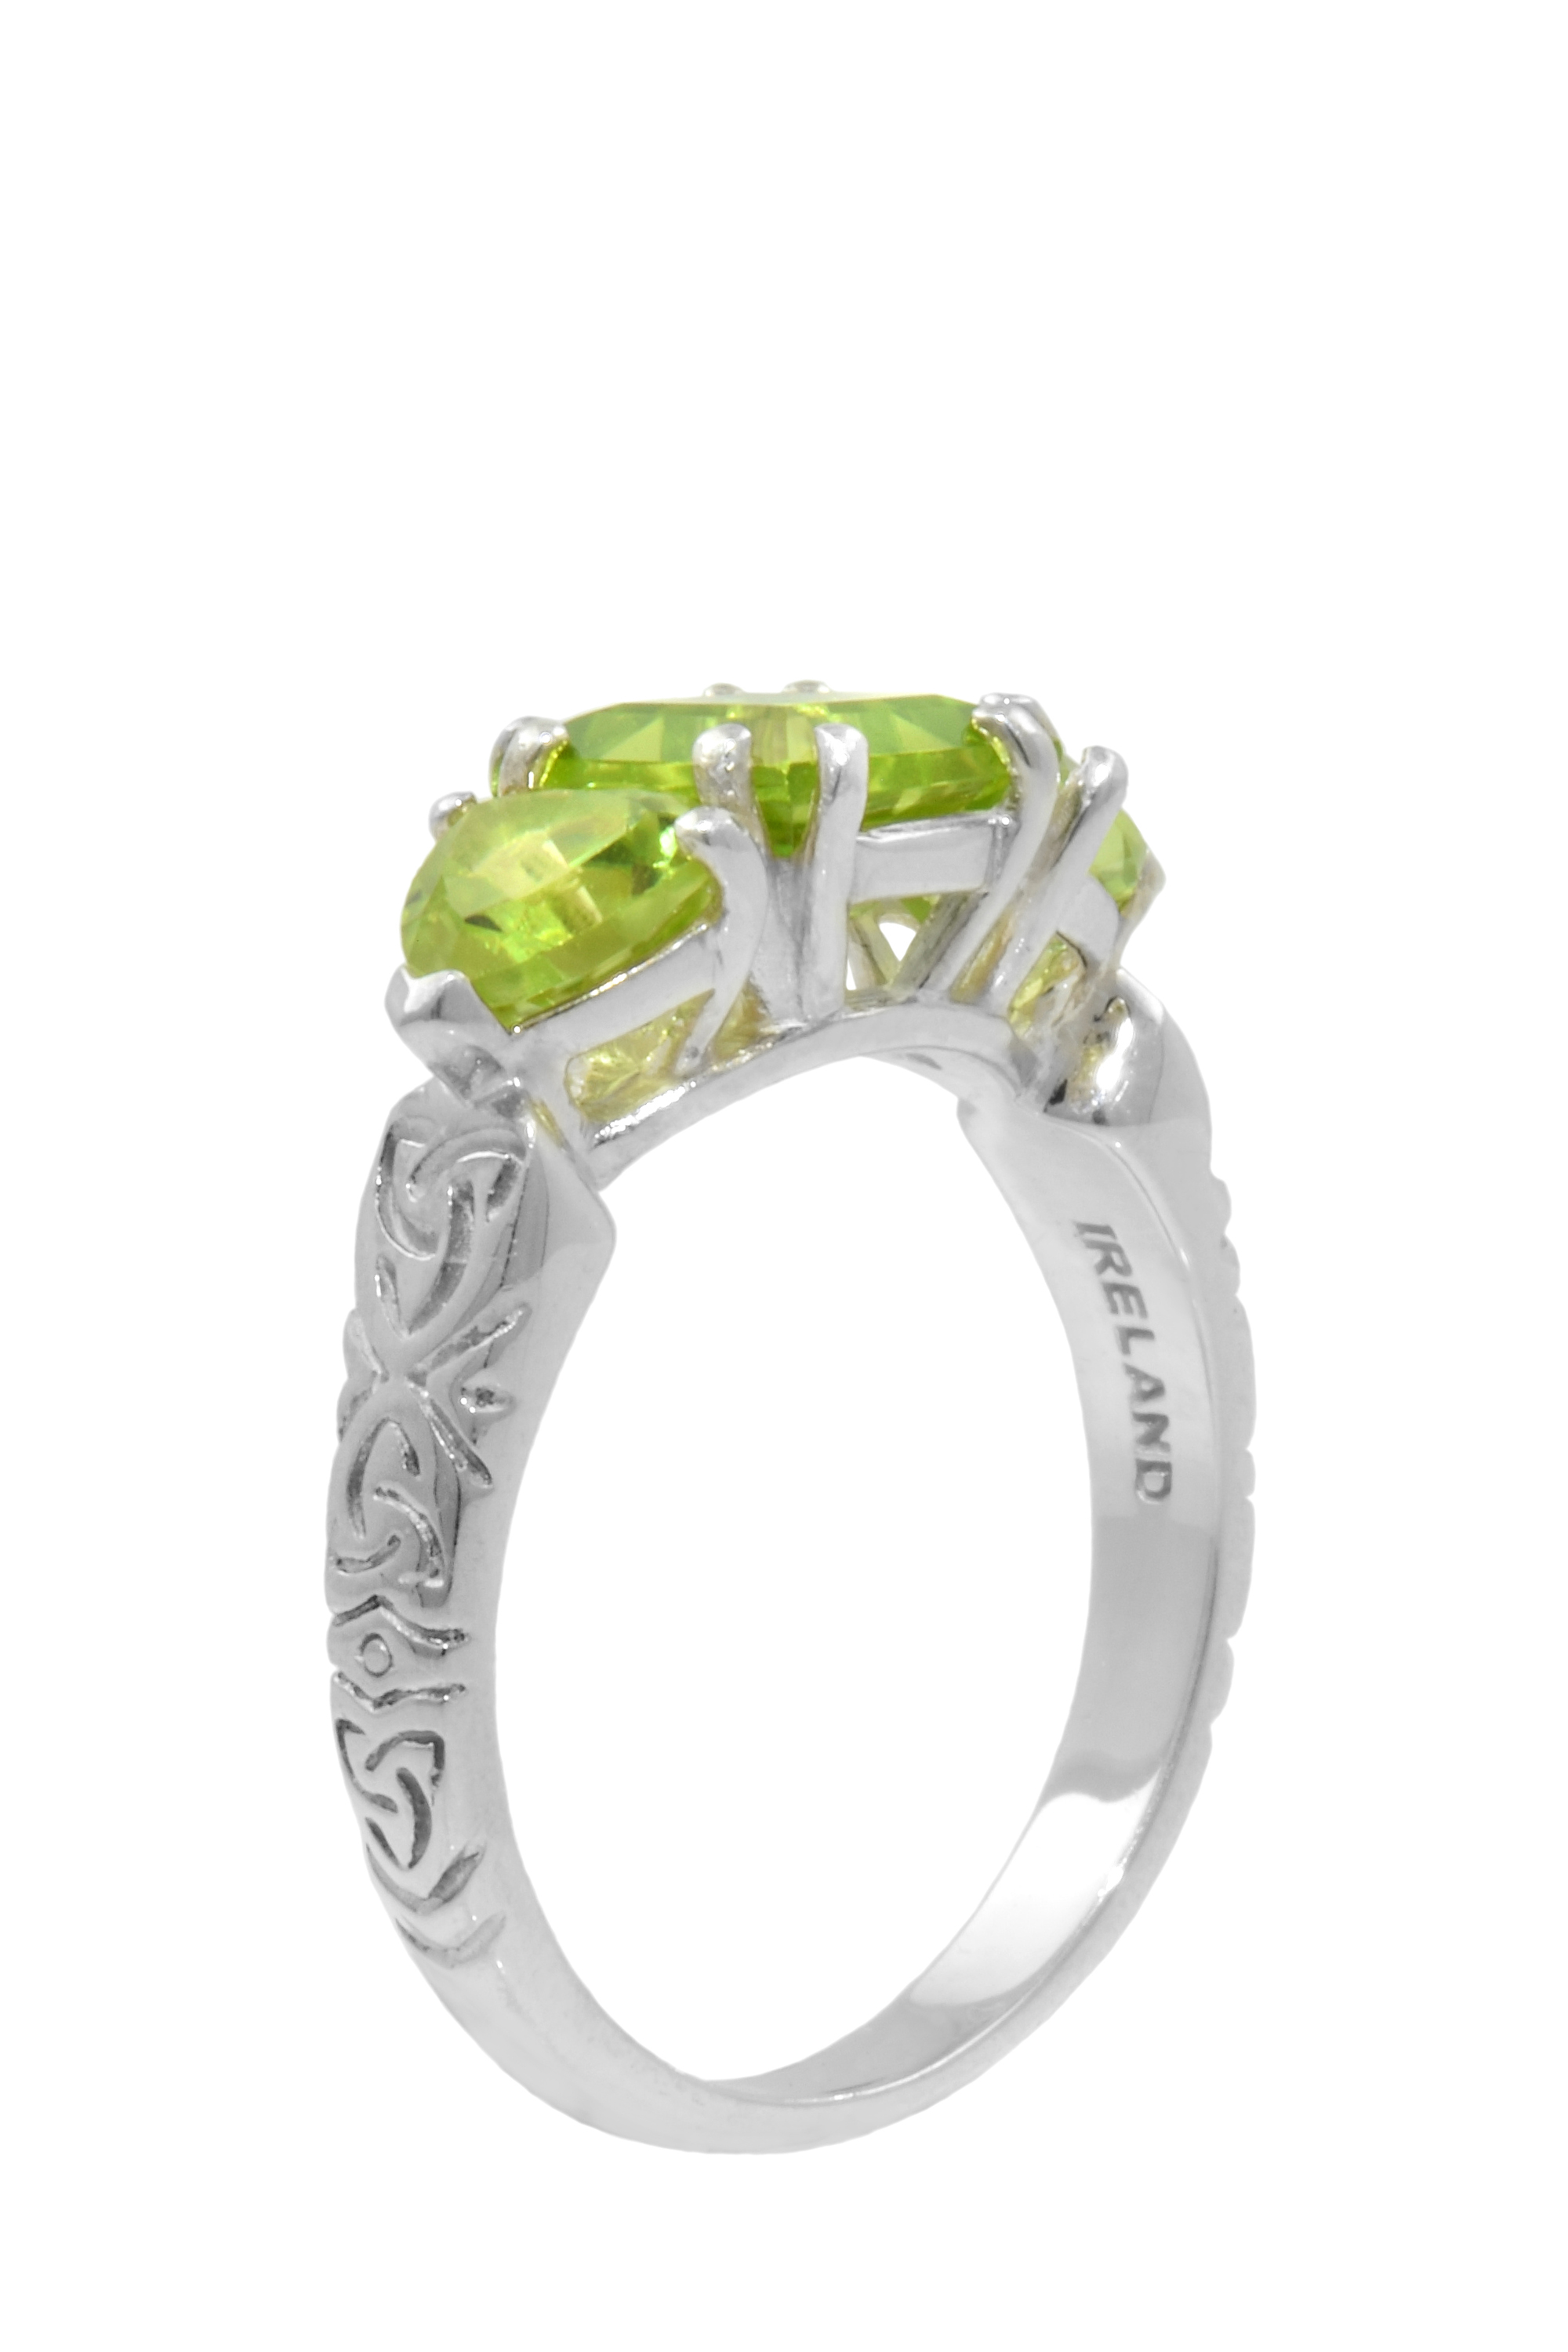 Celtic Ring - Three Stone Peridot with Celtic Knotwork Ring